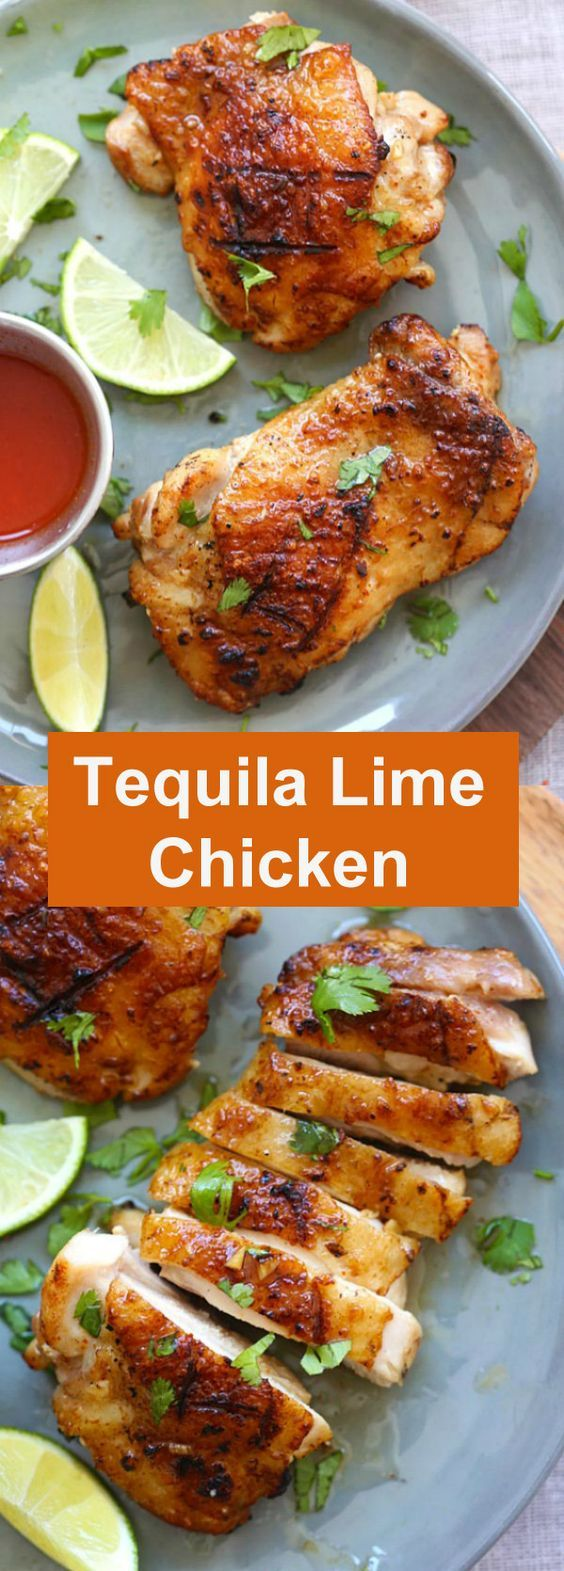 Tequila Lime Chicken - amazing chicken marinated with tequila, lime ...